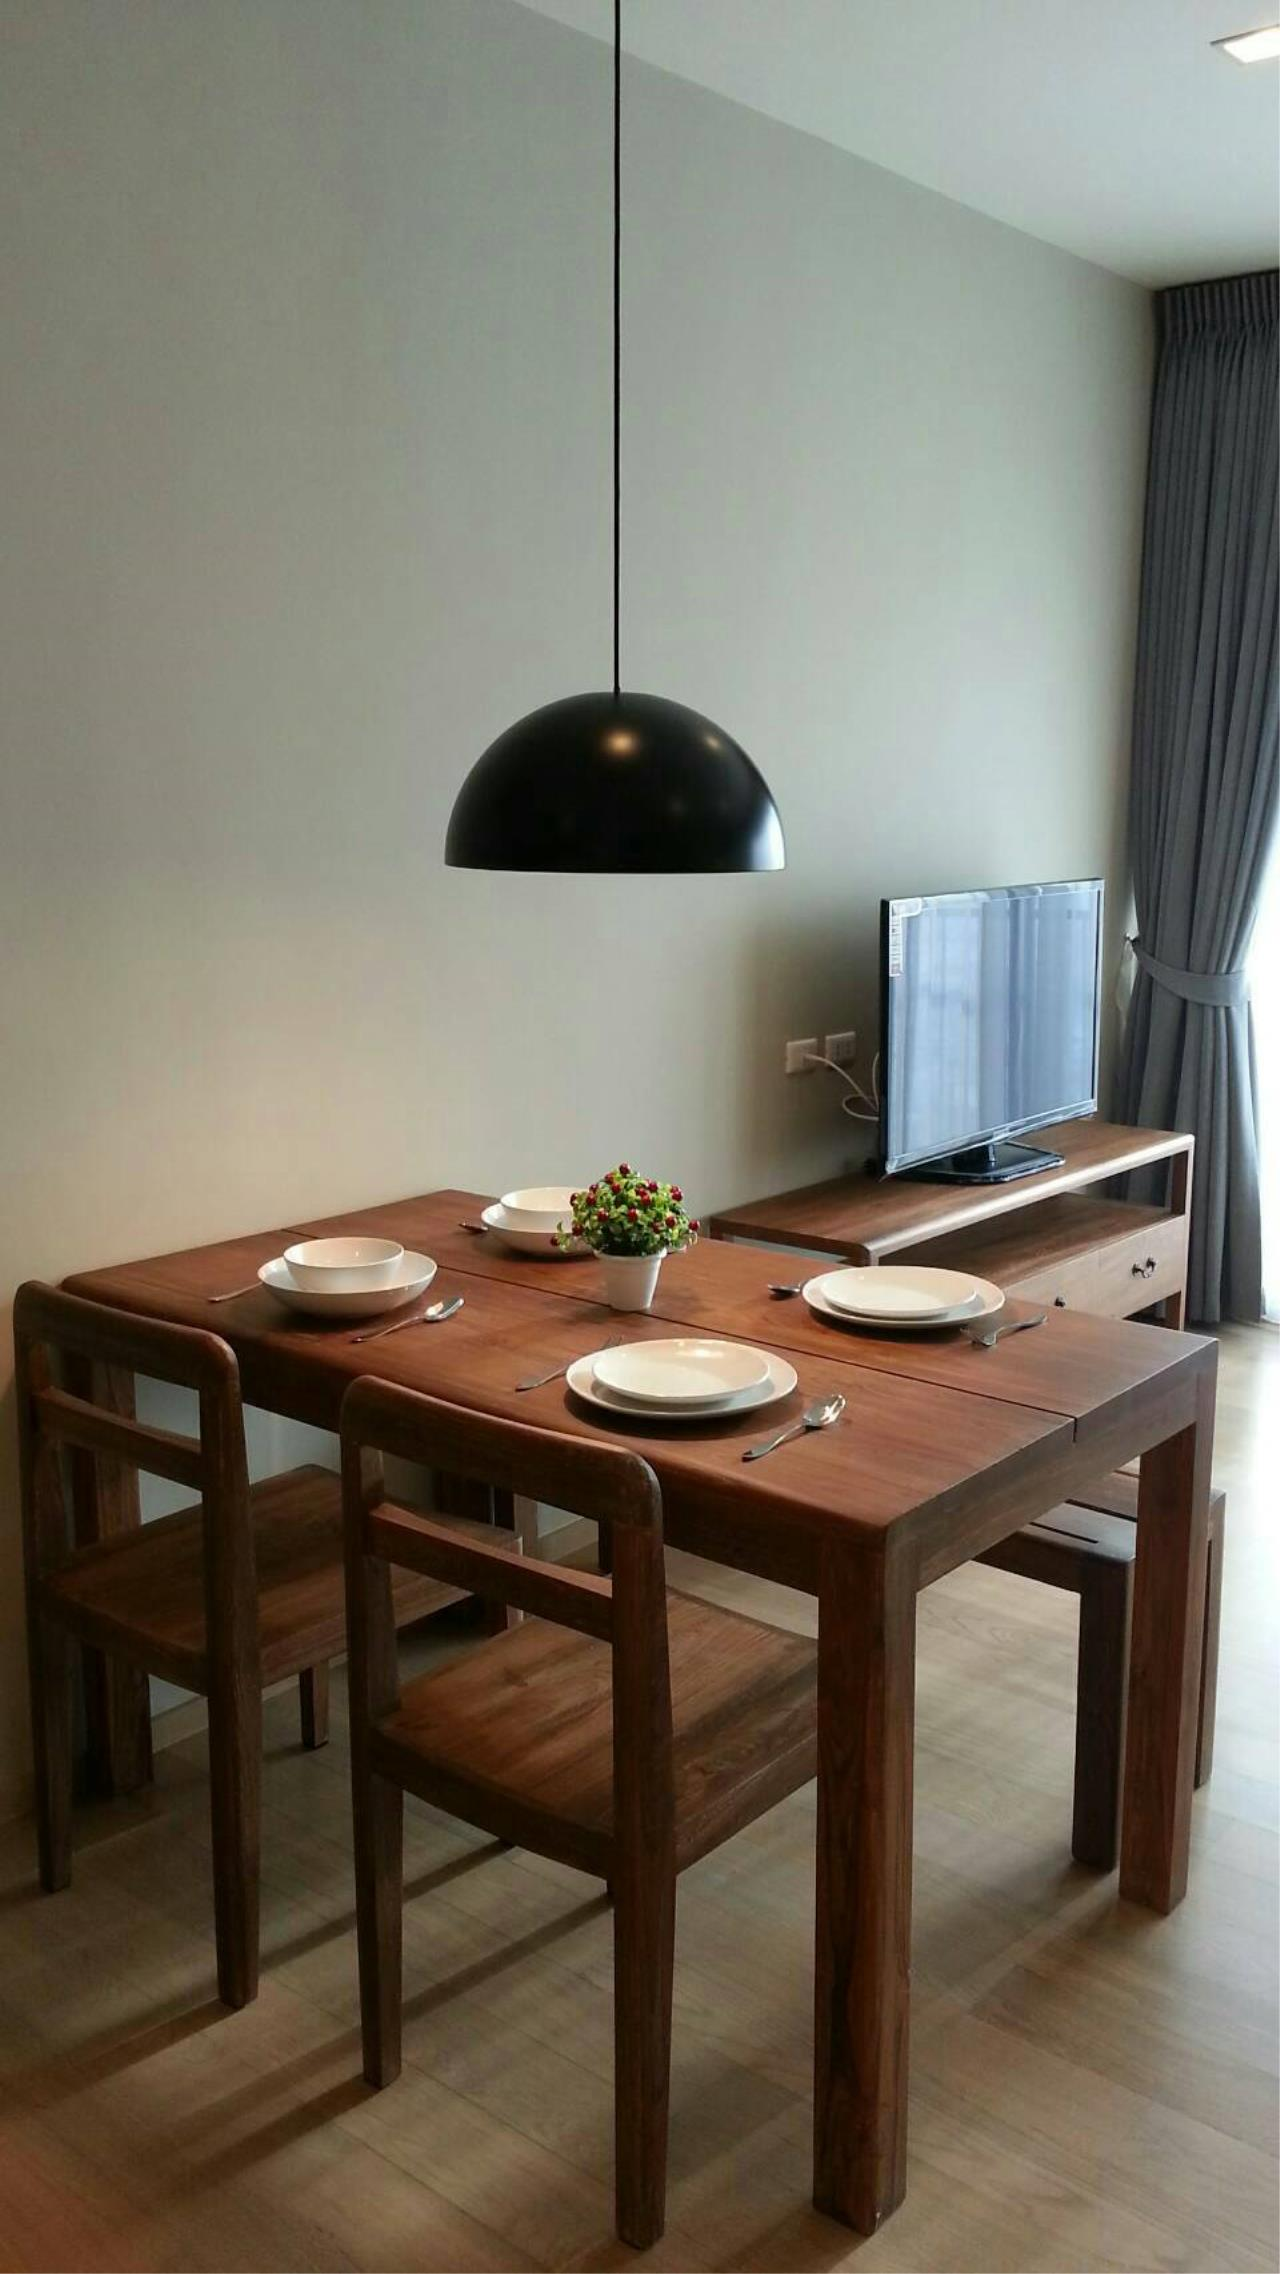 RE/MAX All Star Realty Agency's Rhythm Asoke beautiful rooms for sale/rent. 5